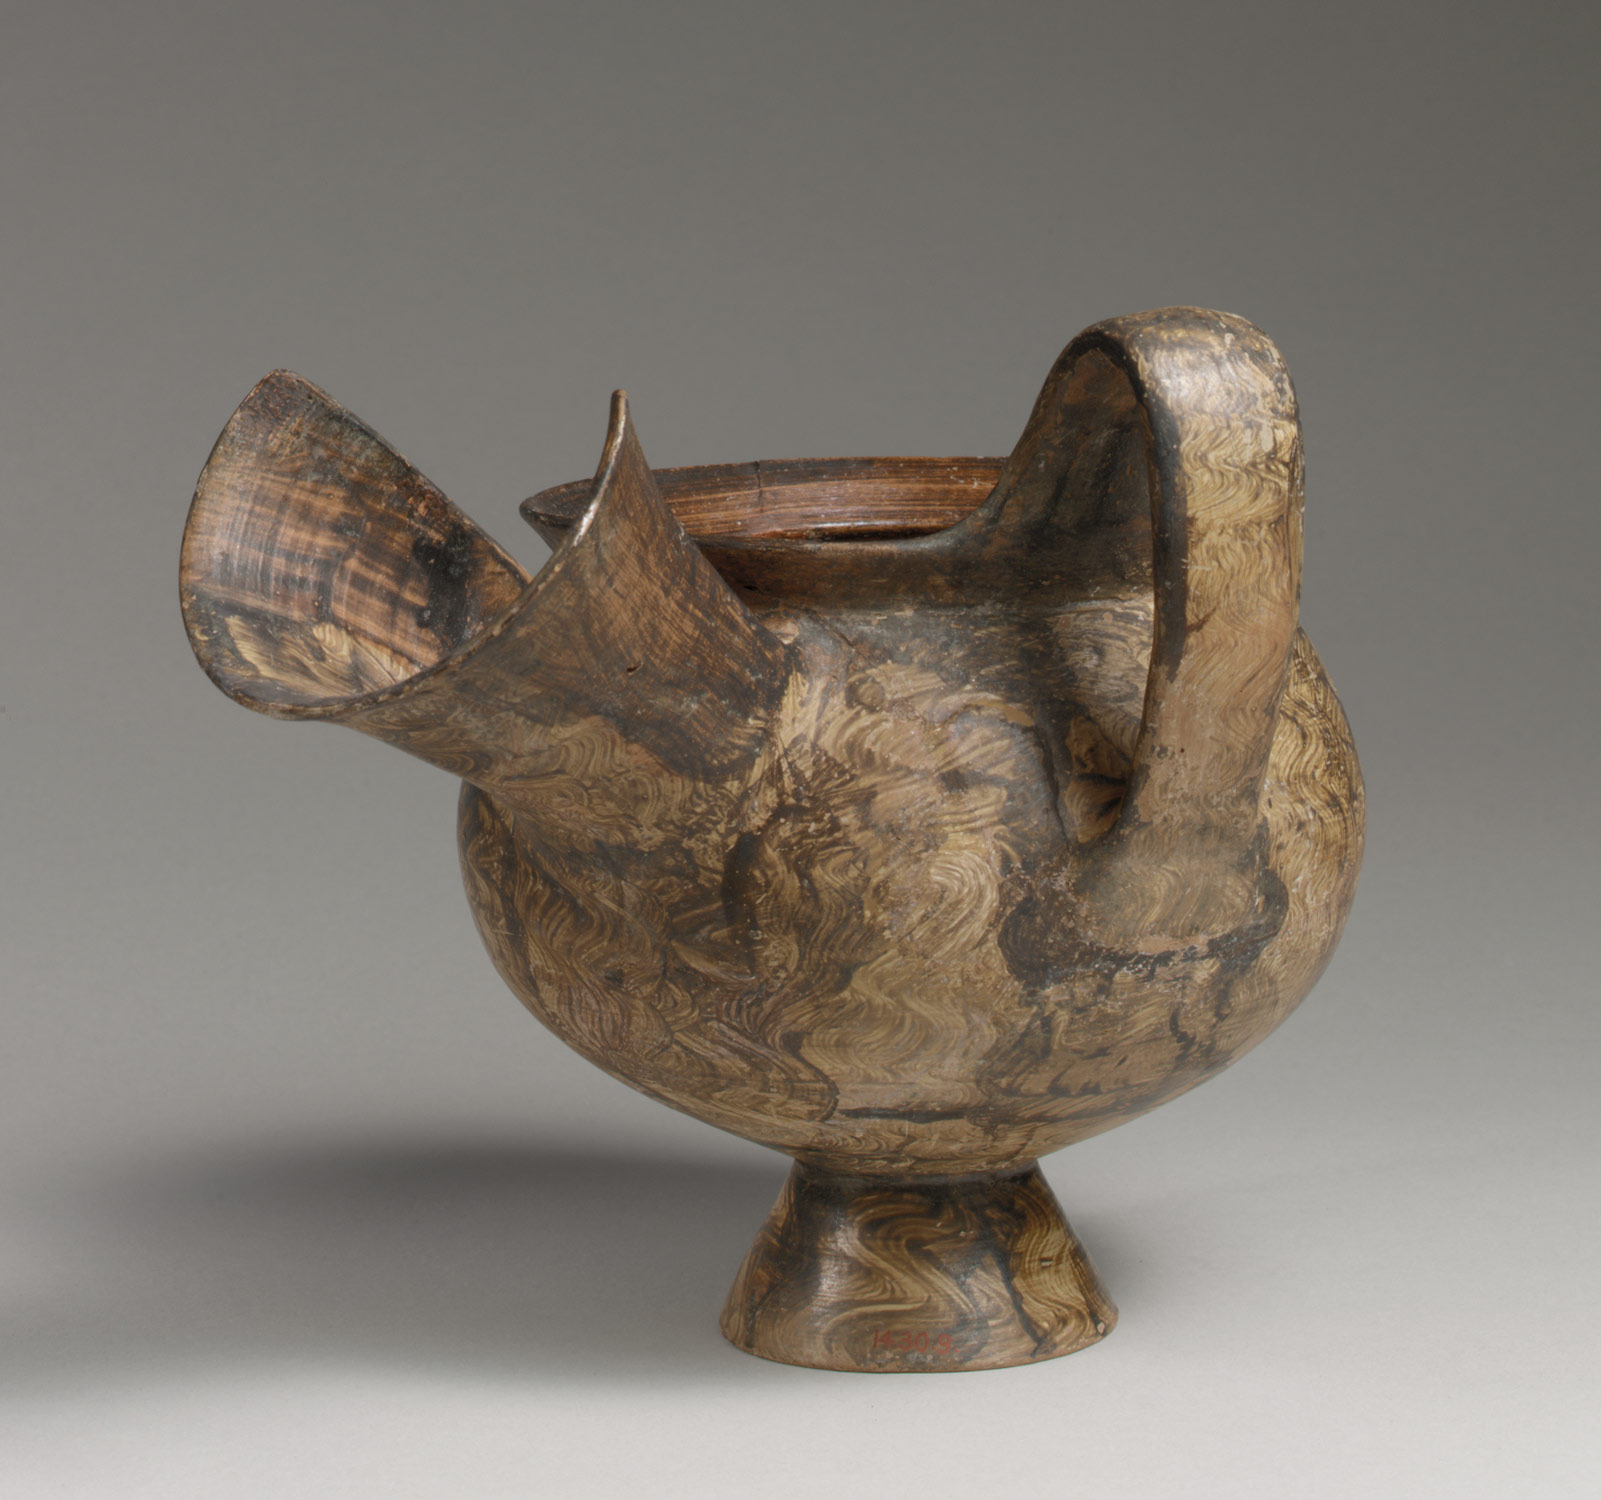 Jug with an oversized spout